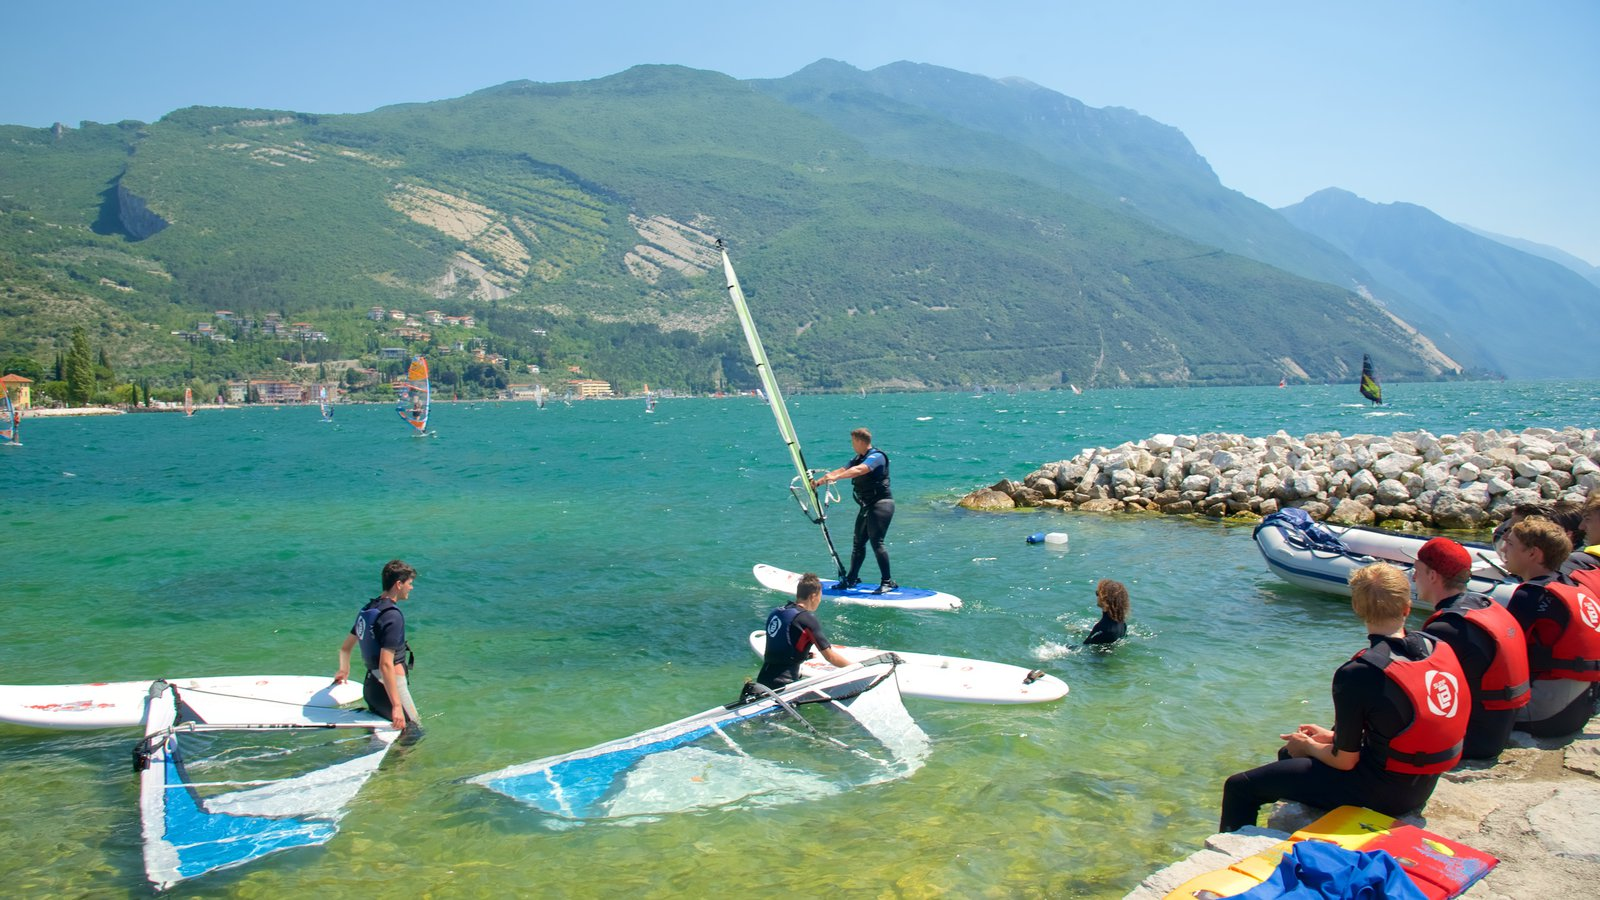 Nago-Torbole which includes kite surfing and rugged coastline as well as a small group of people